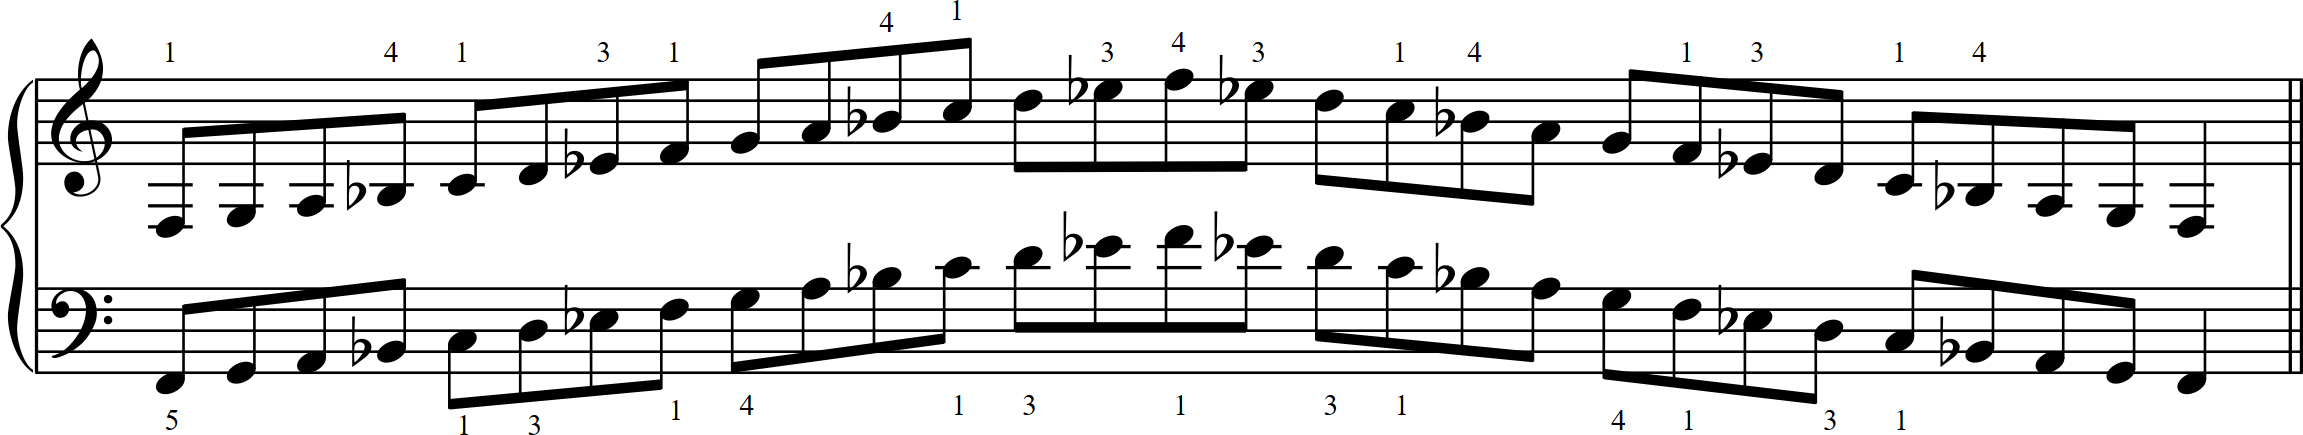 Grade 2 - Mixolydian scale on F